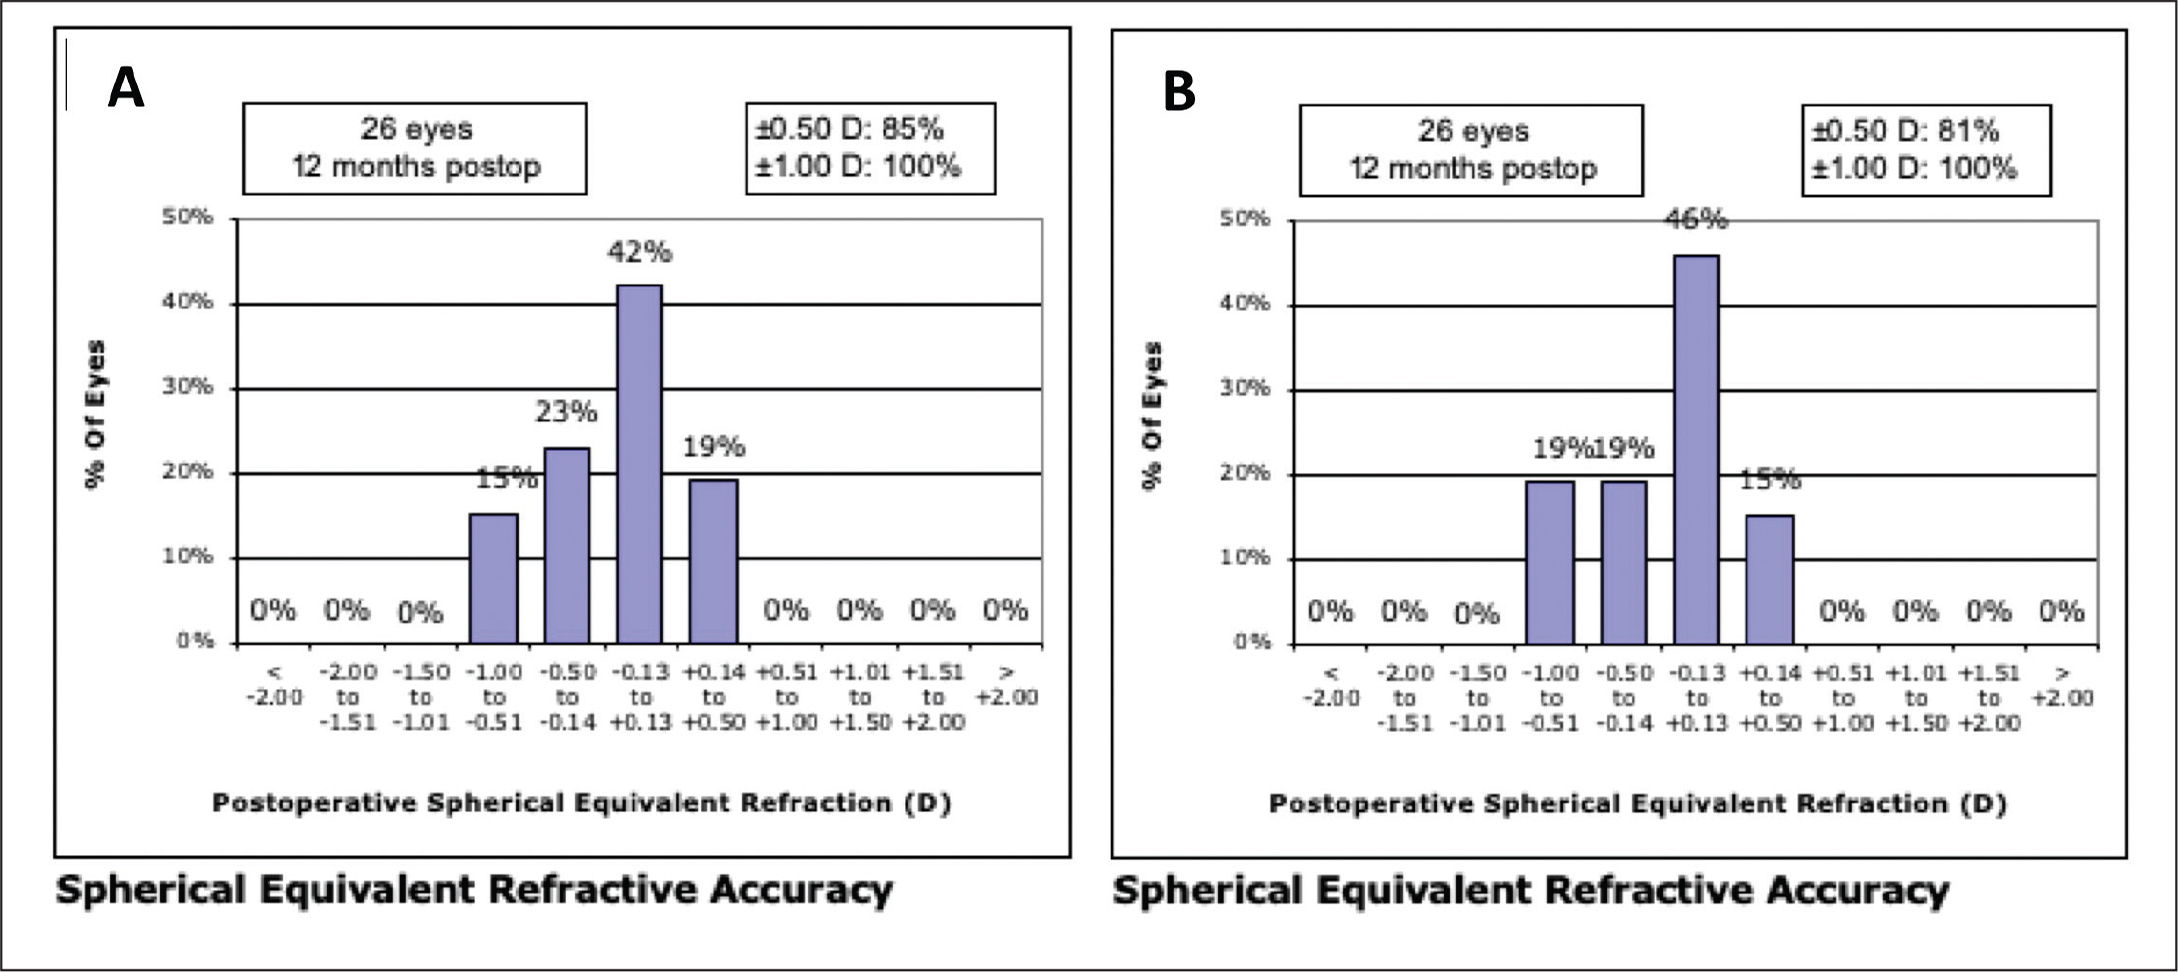 Accuracy of manifest refraction spherical equivalent at 12 months in the (A) topography-guided customized ablation treatment (TCAT) and (B) wavefront-optimized (WFO) groups. D = diopters